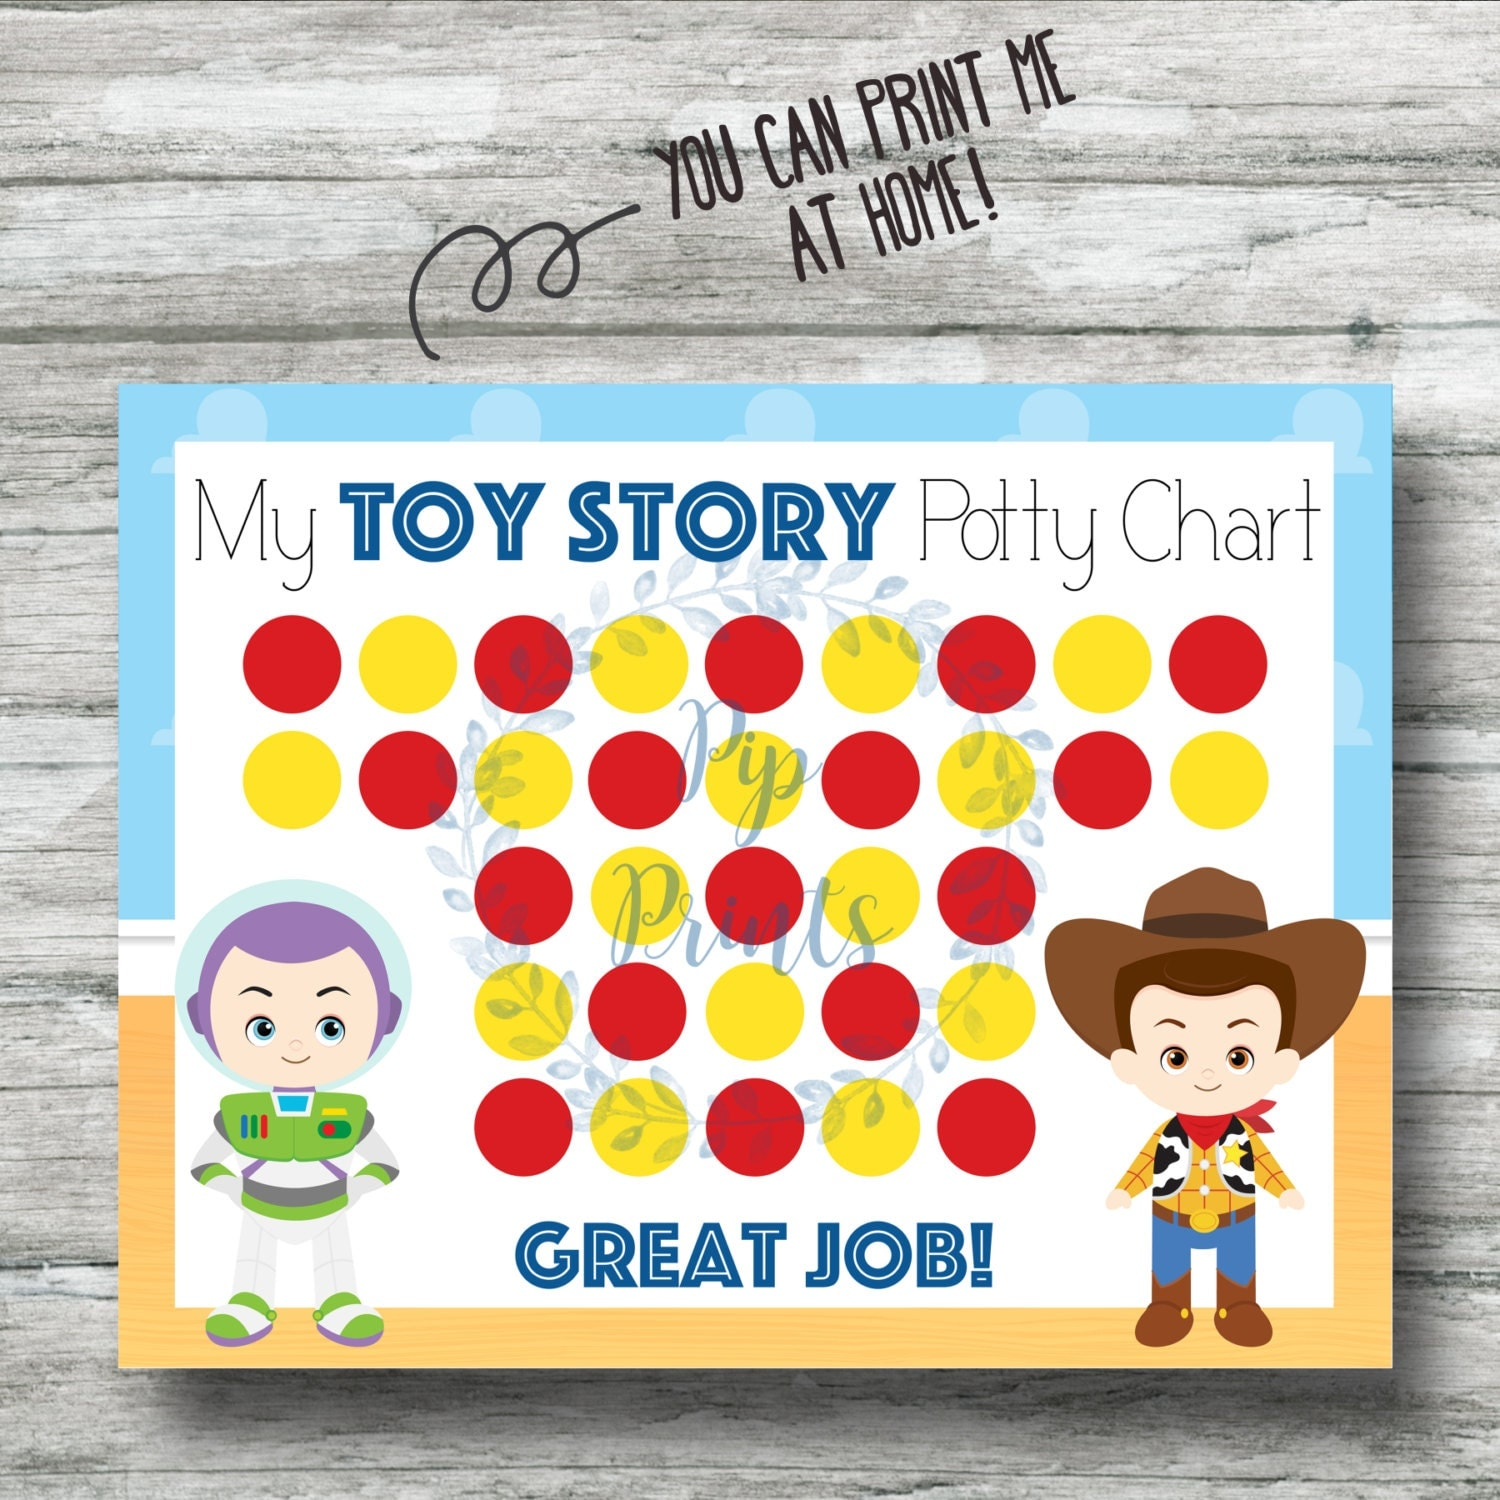 Toy Story Potty Chart : Printable toy story potty training chart instant download